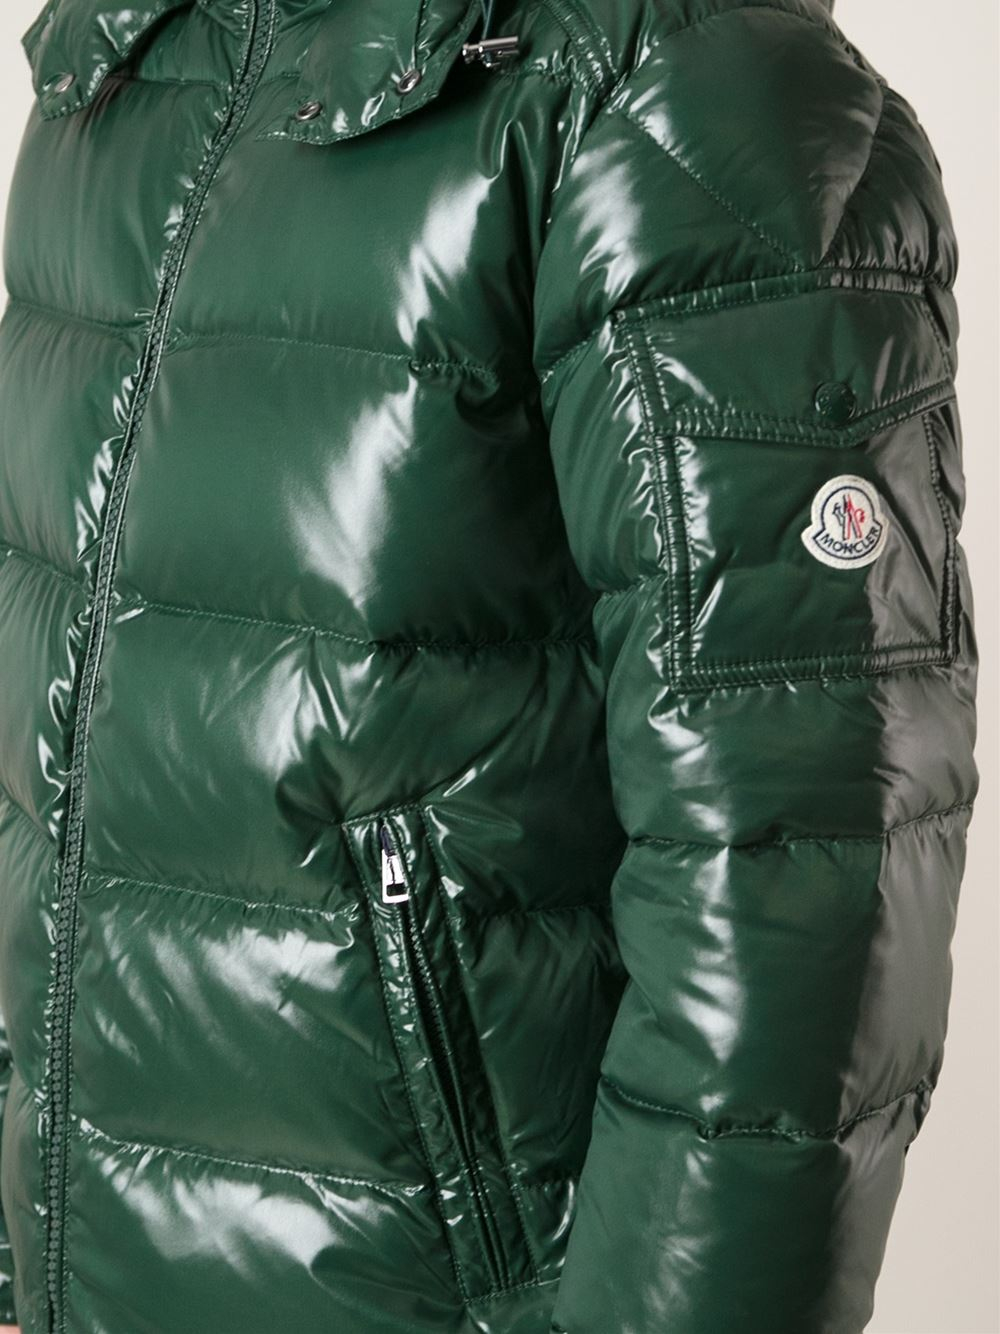 Surprising Monclermaya Jacket | Enticing Moncler Maya